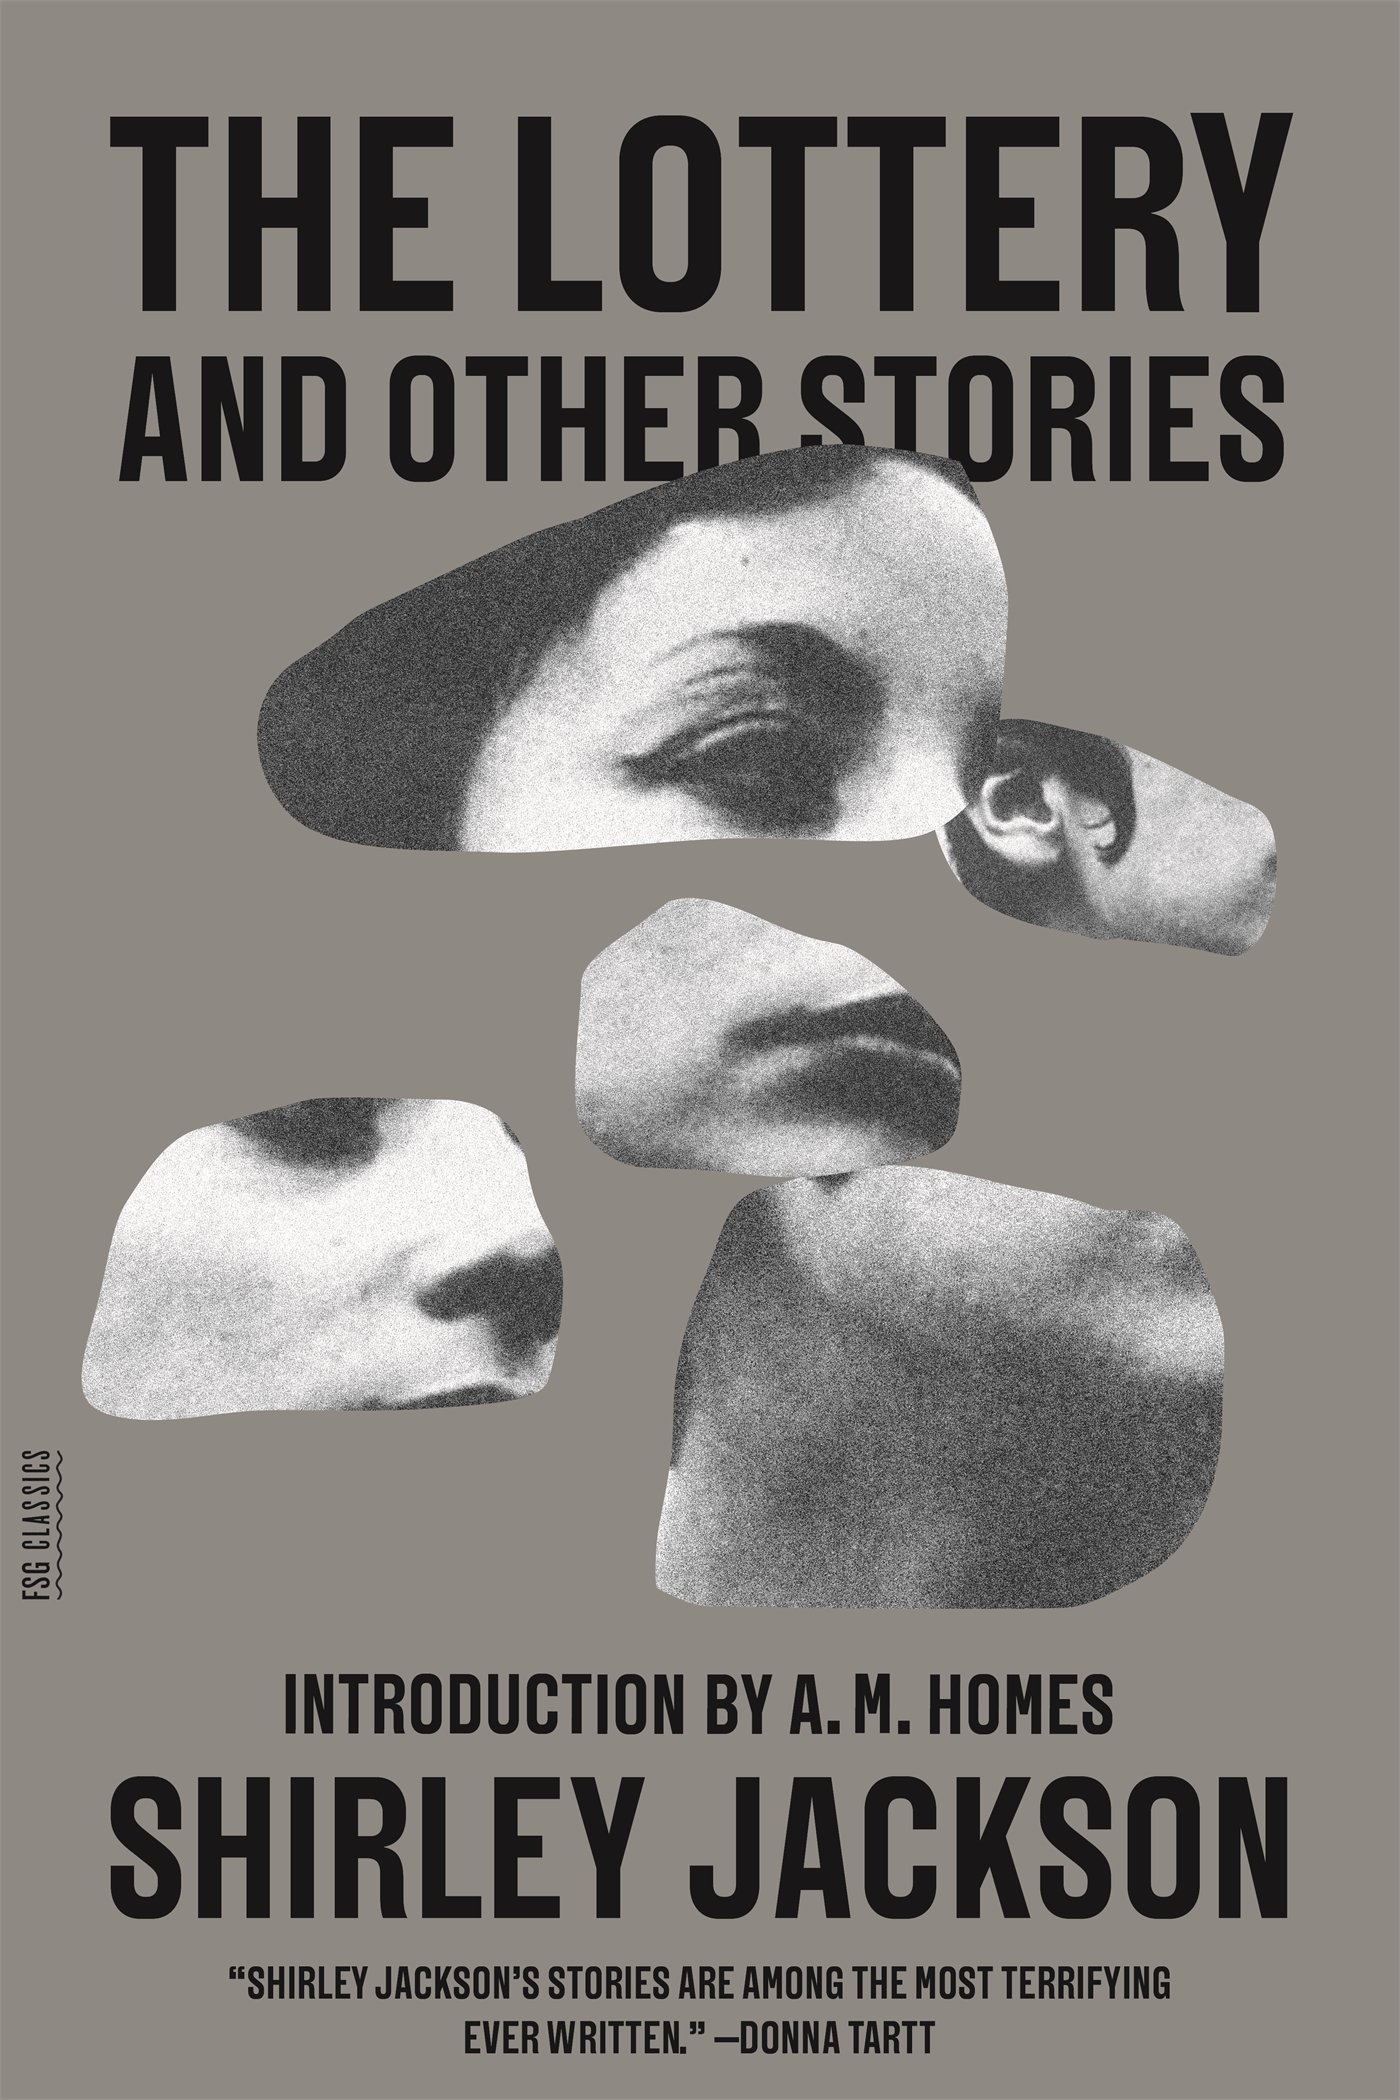 the lottery and other stories shirley jackson a m homes the lottery and other stories shirley jackson a m homes 9780374529536 literature